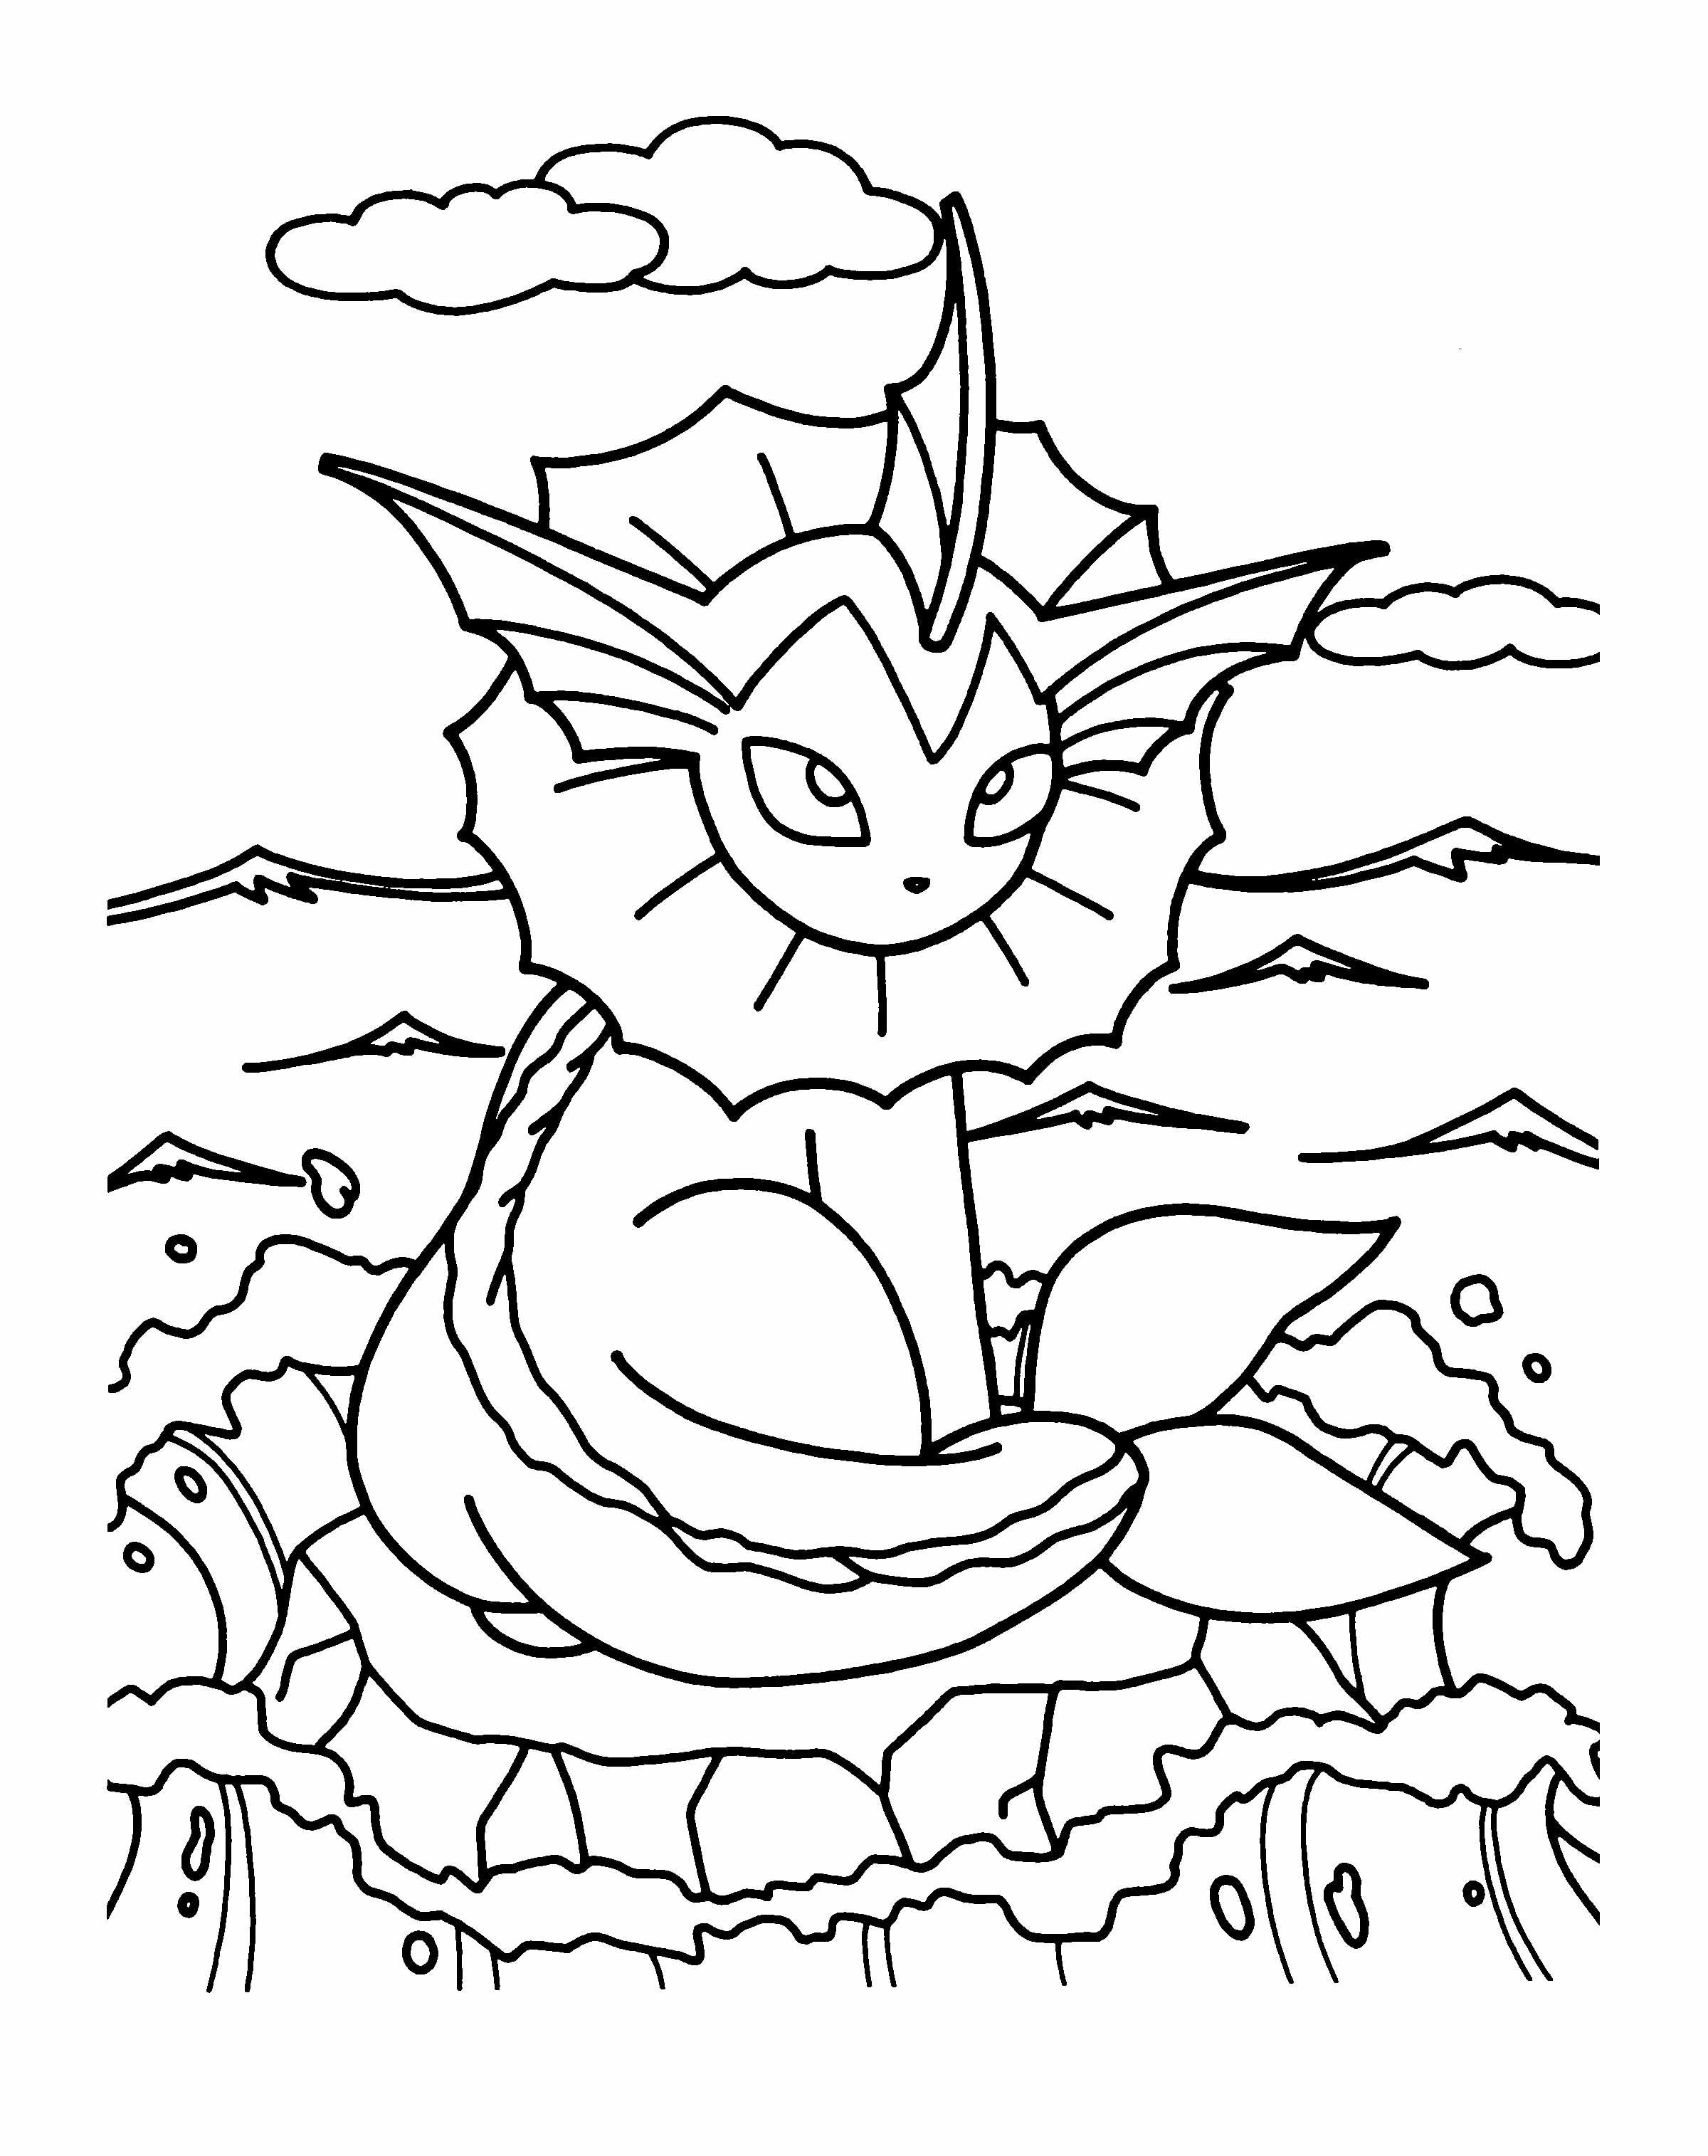 Pokemon Girl Scout Coloring Page | Pokemon coloring ...